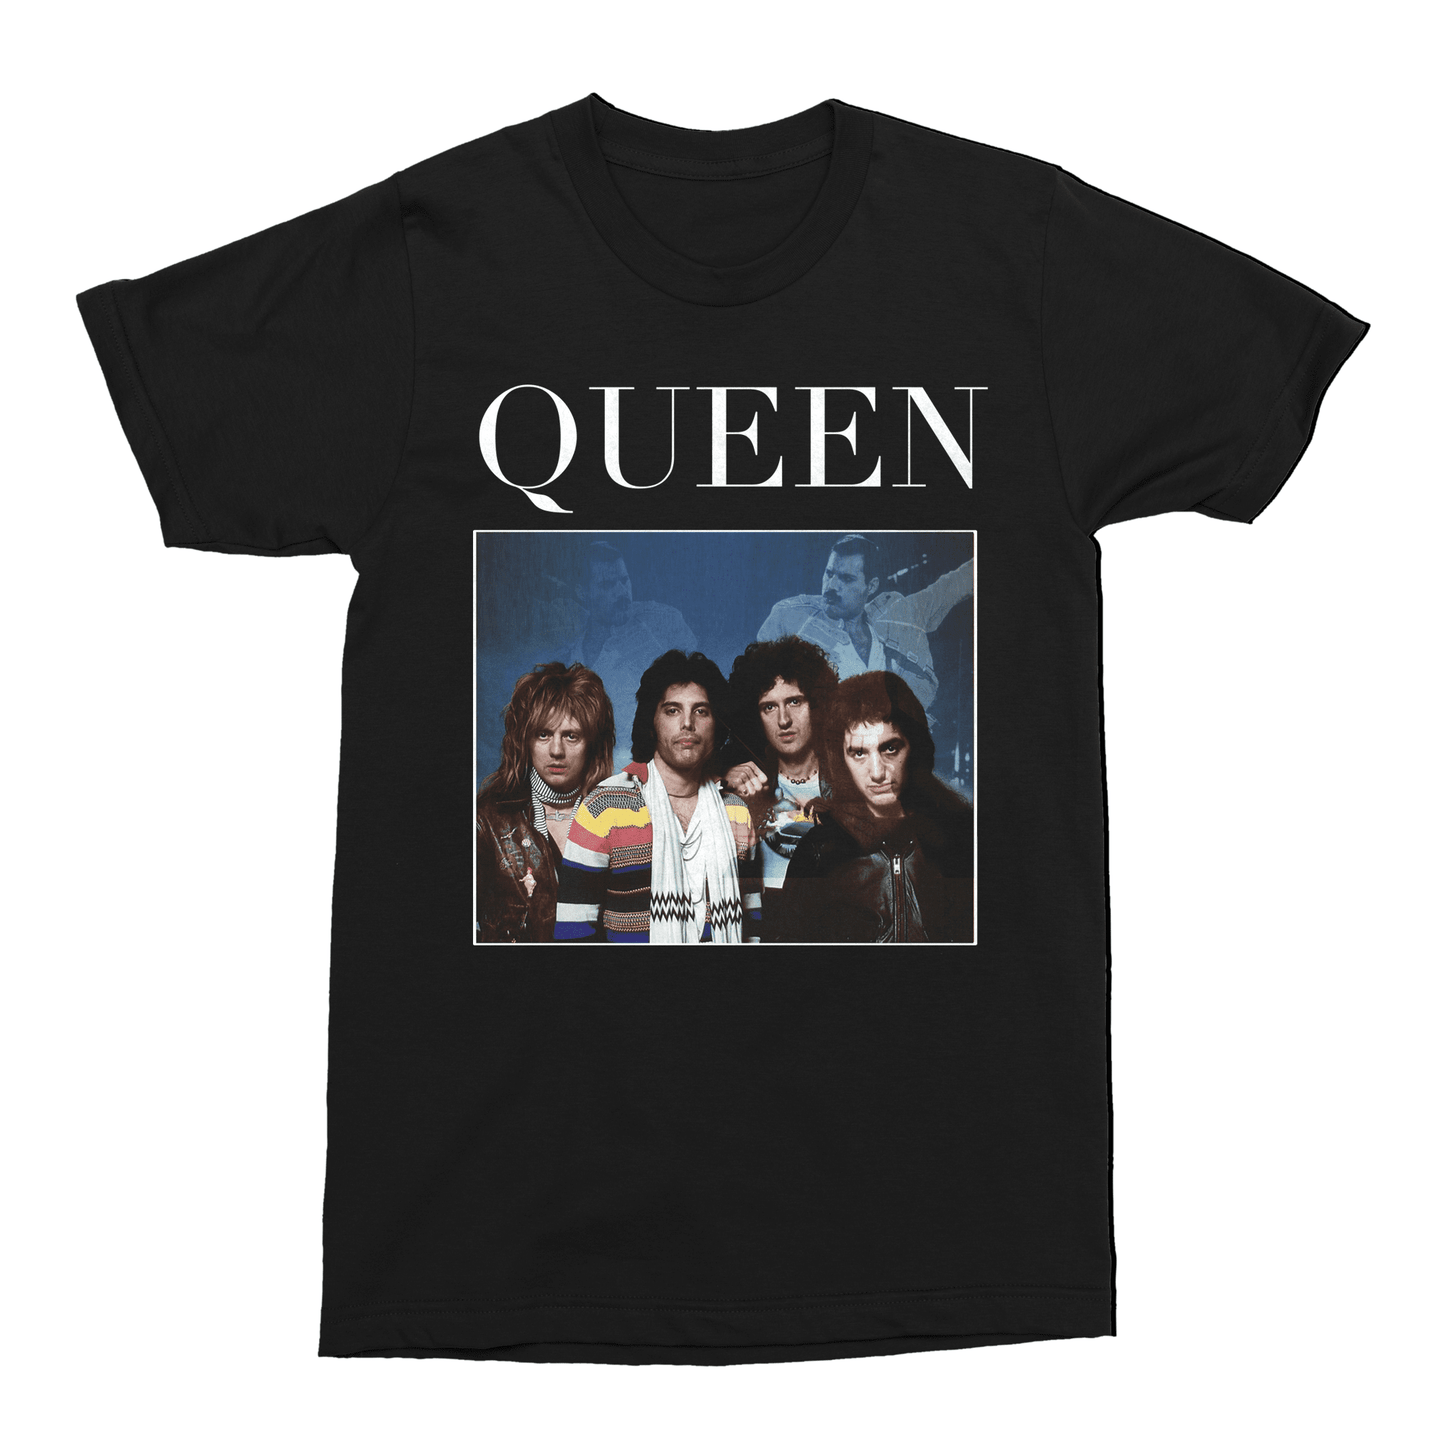 Queen Freddie Mercury Unisex Vintage Throwback T-Shirt - Timeless Tees